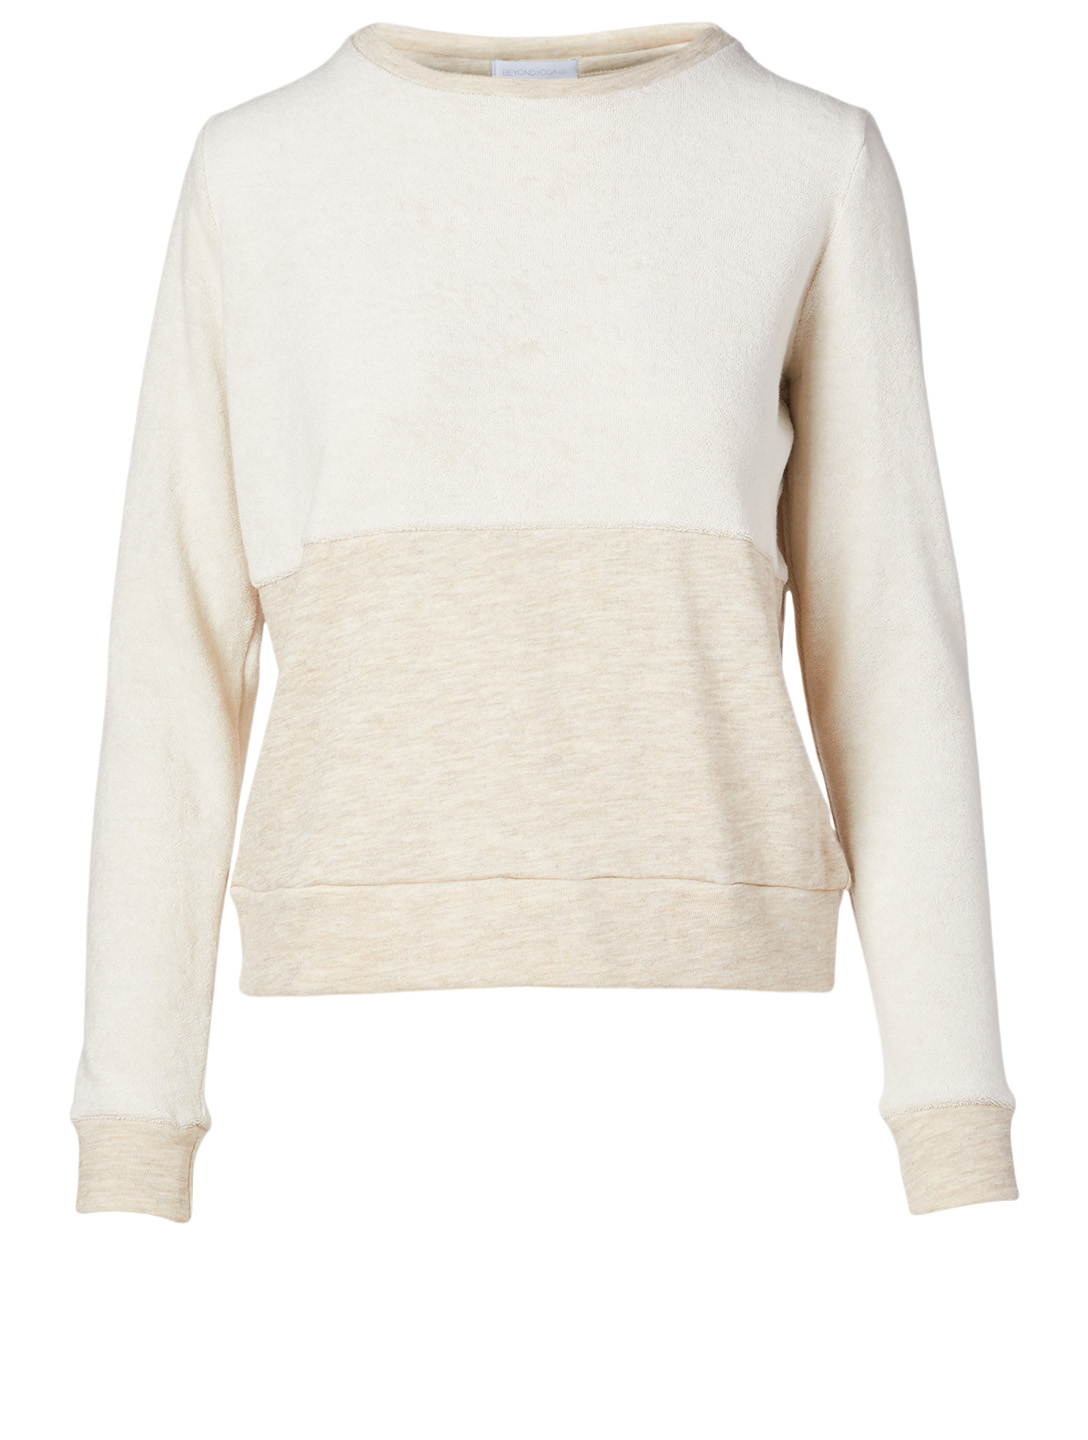 BEYOND YOGA Cross Path Sweater Women's Beige